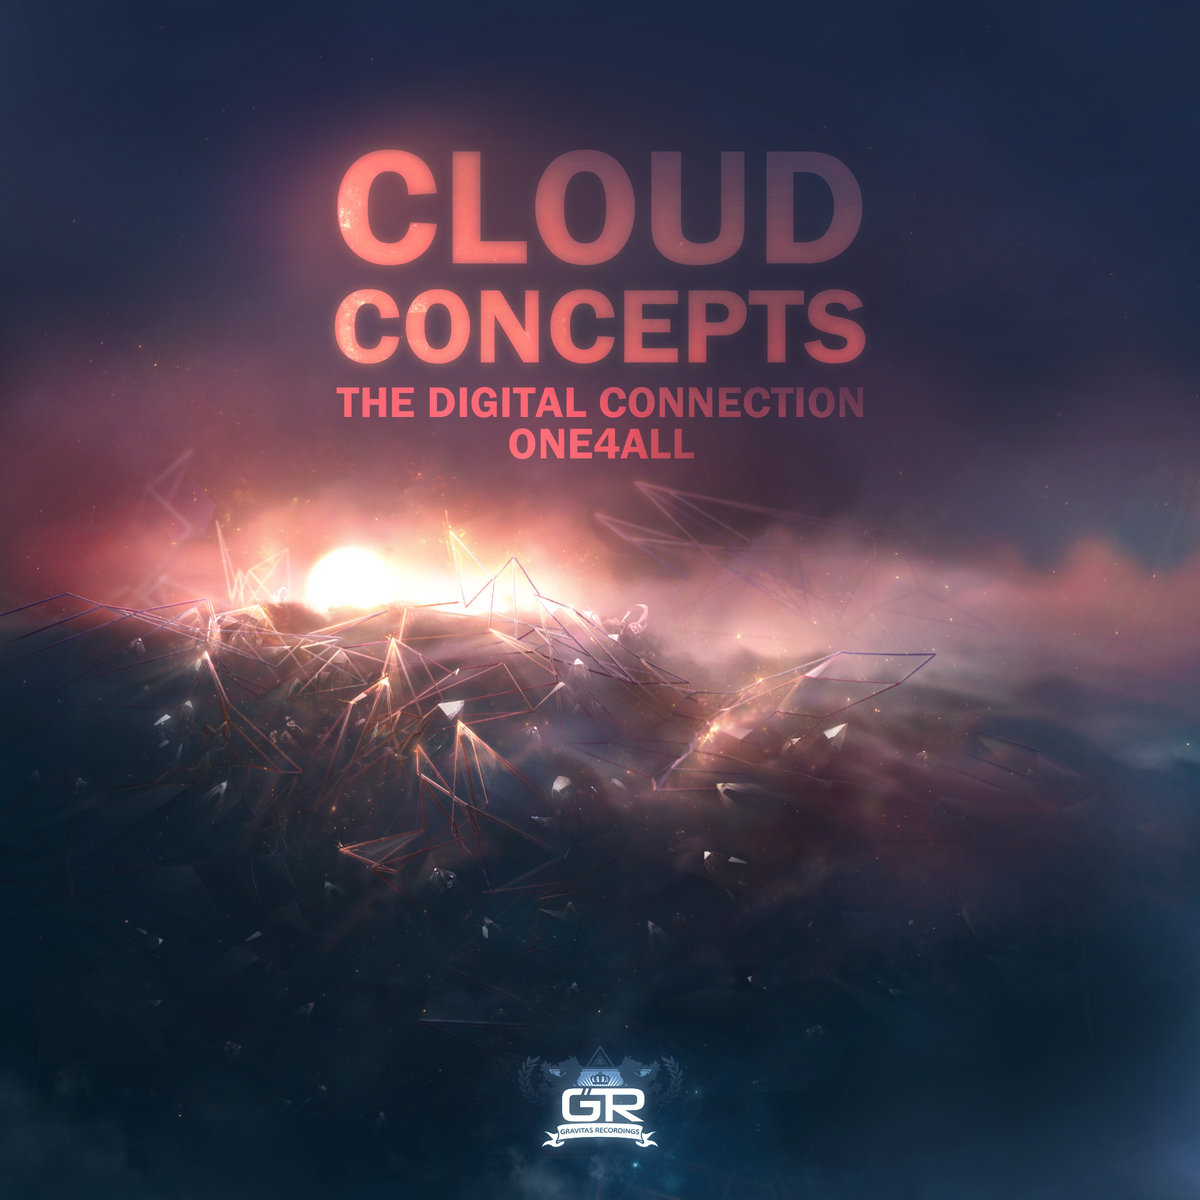 The Digital Connection & ONE4ALL - Cloud Concepts @ 'Cloud Concepts' album (colorado, denver)